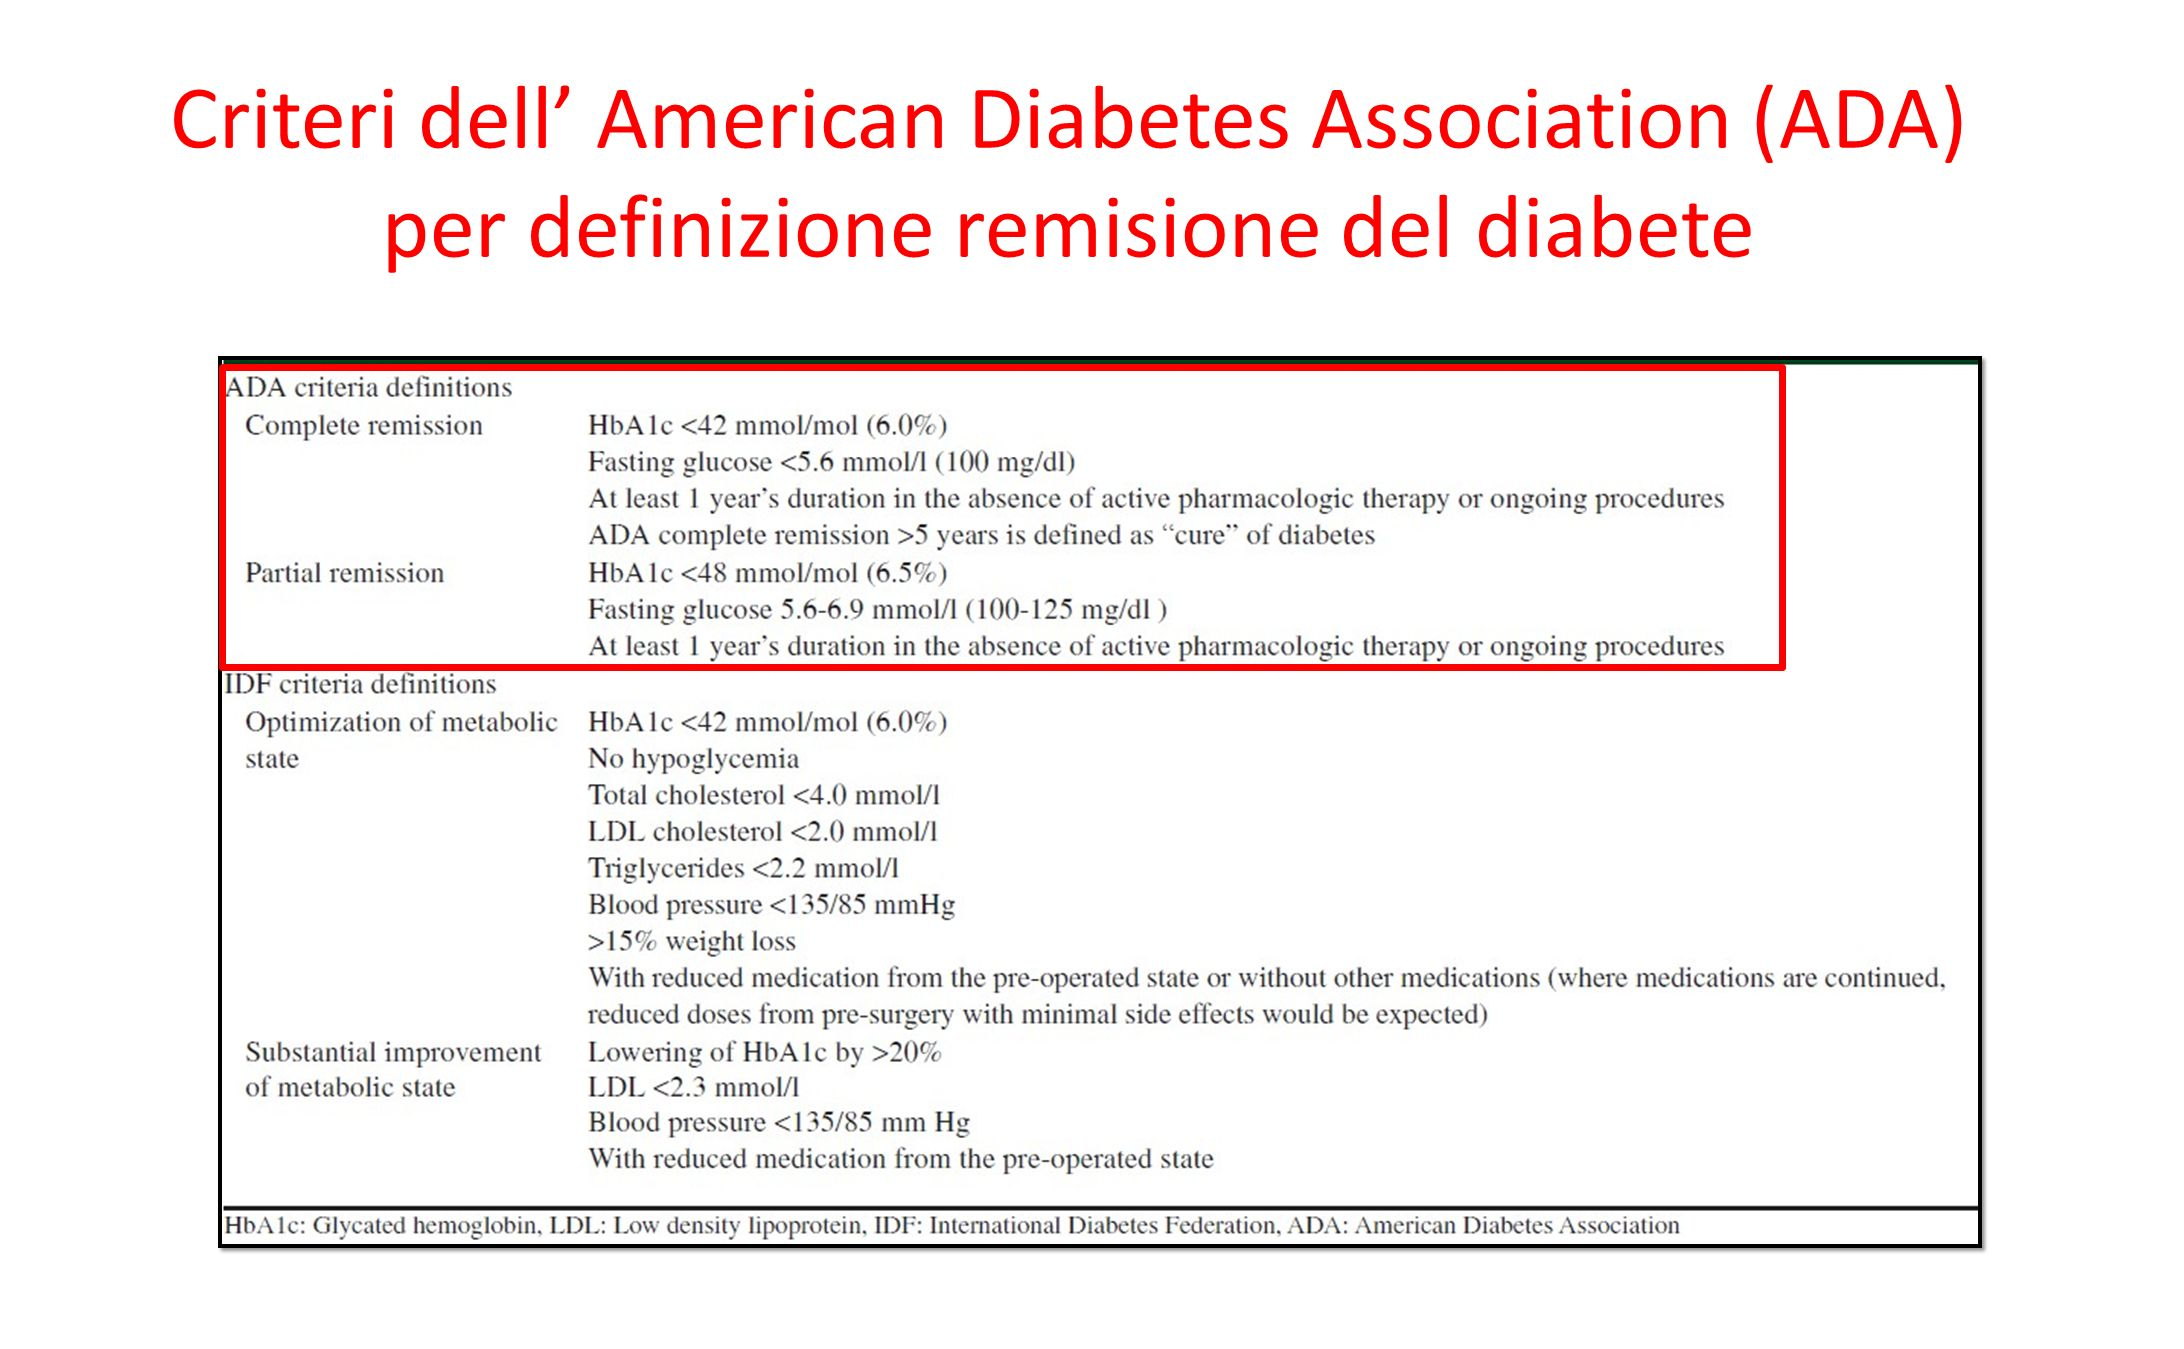 Criteri dell' American Diabetes Association (ADA) per definizione remisione del diabete